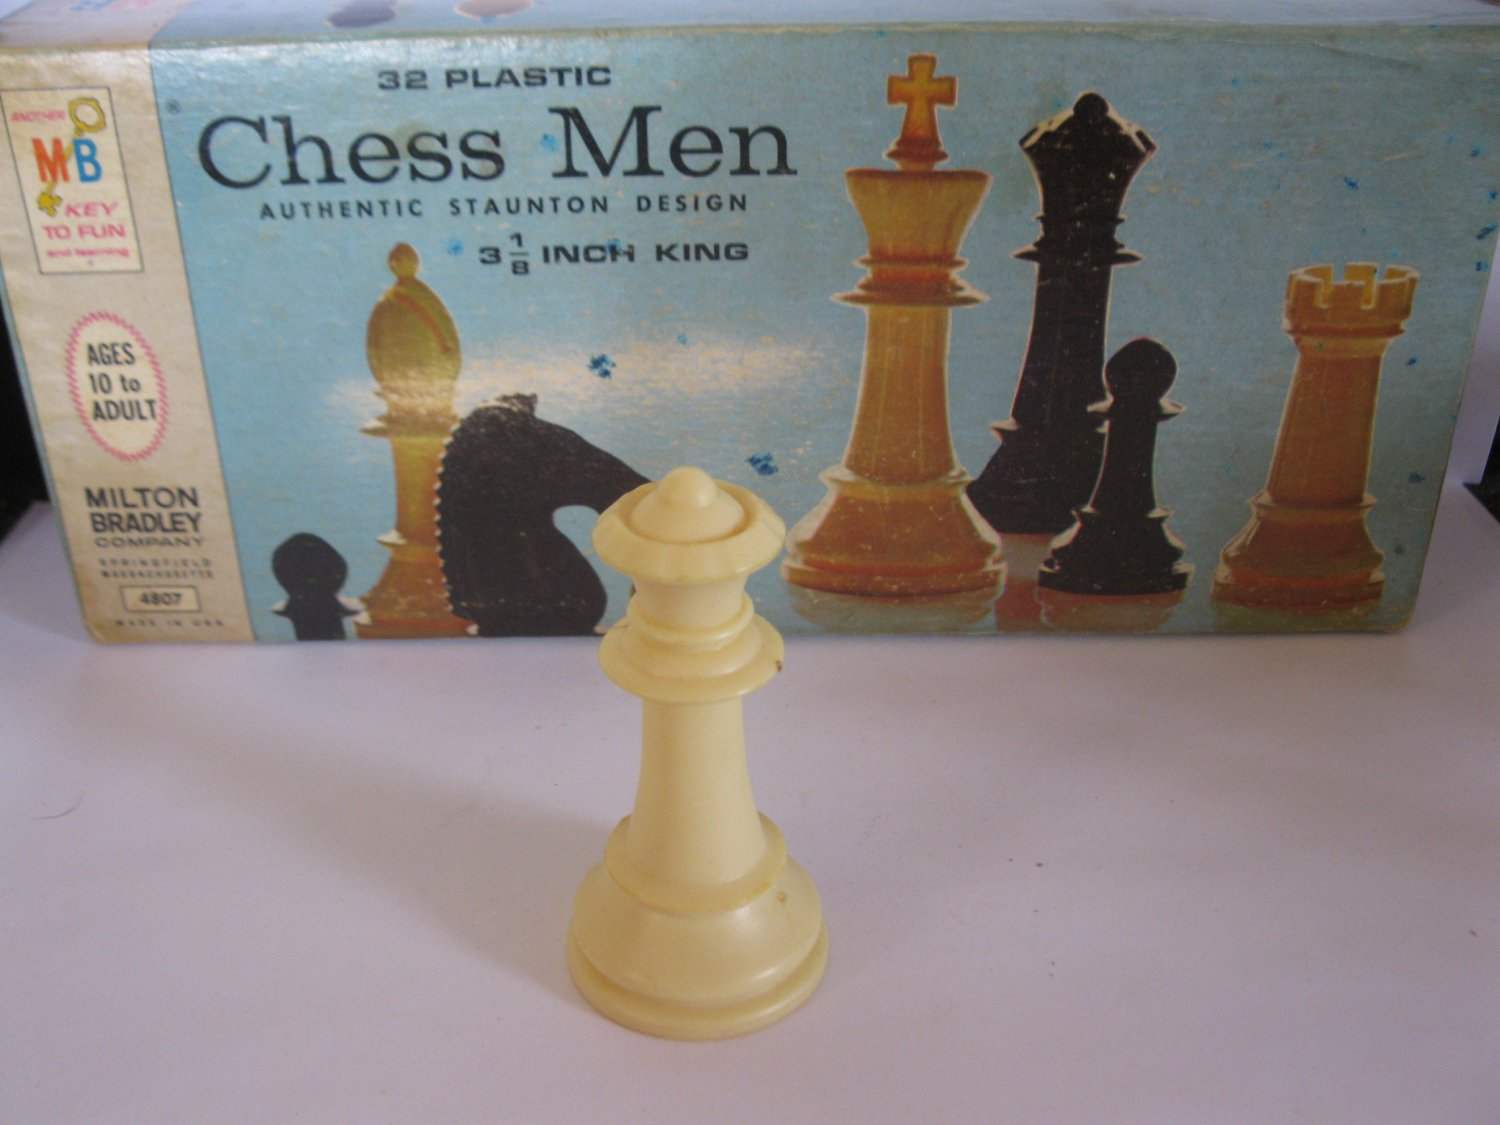 1969 Chess Men Board Game Piece: Authentic Stauton Design - White Queen